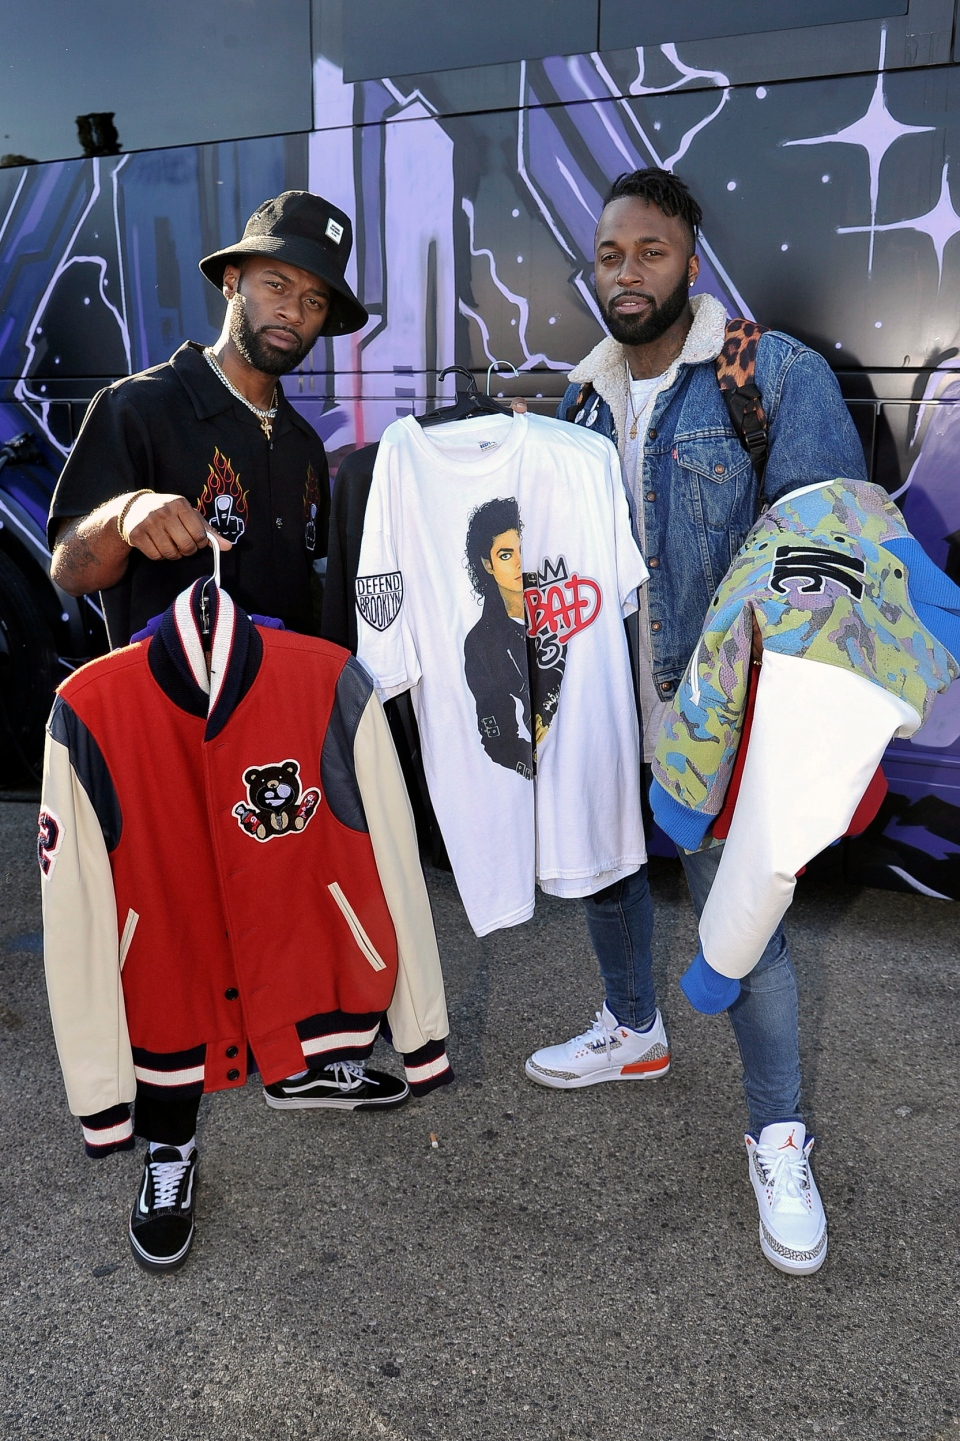 Darius Logan, left, and Dominique Logan of the musical duo 'Blaq Tuxedo' shop at Chris Brown's yard sale at Brown's home in the Tarzana neighborhood of the San Fernando Valley, Wednesday, Nov. 6, 2019, in Los Angeles. (Photo by Richard Shotwell/Invision/AP)